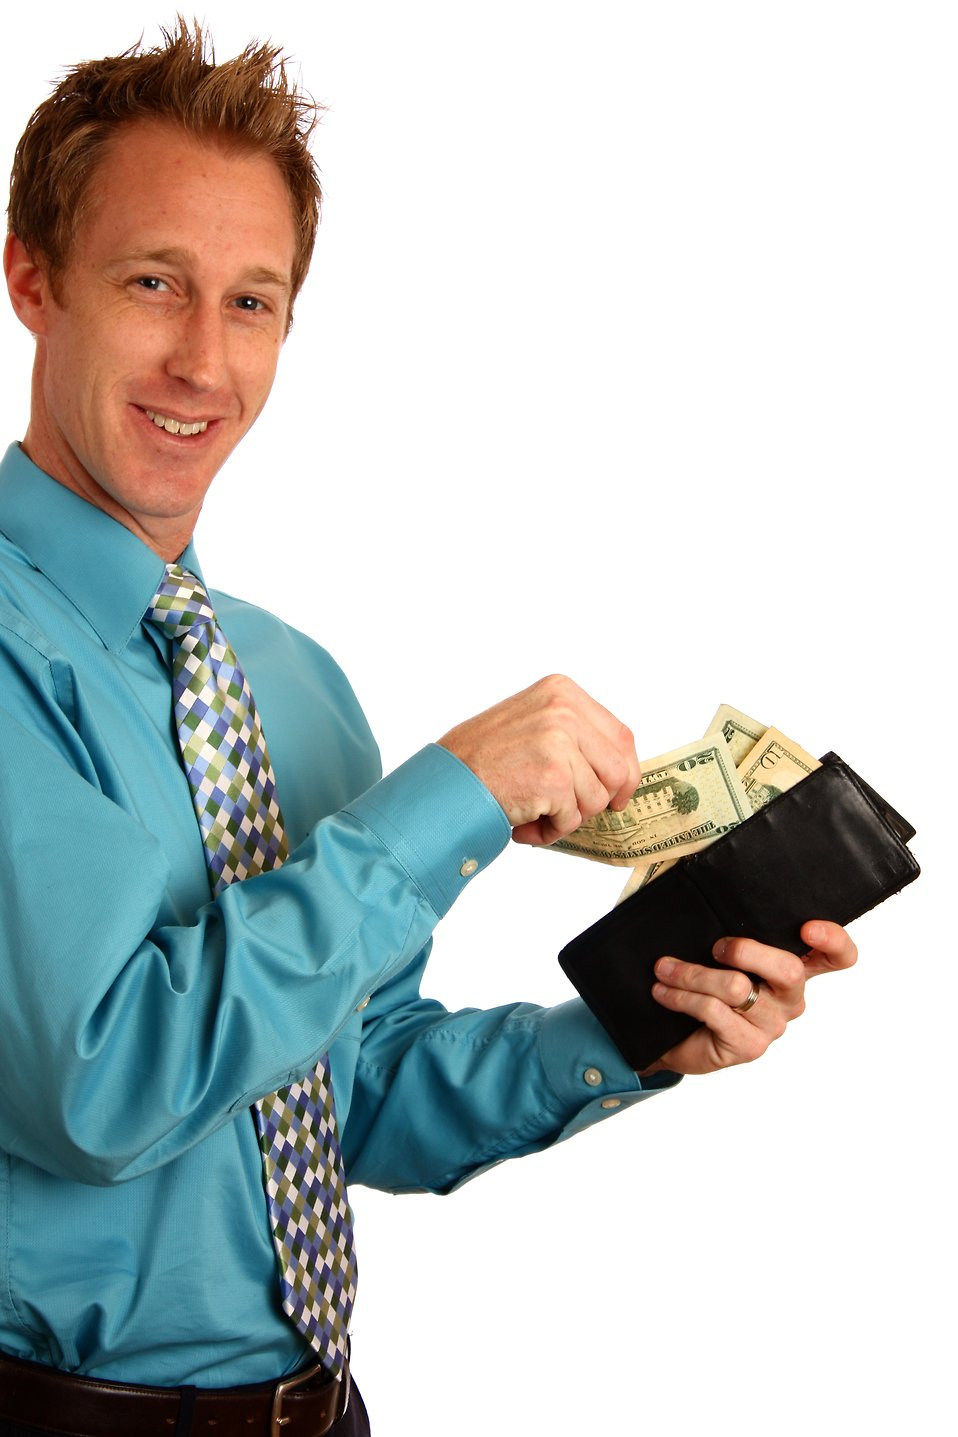 A young businessman holding a wallet with money : Free Stock Photo